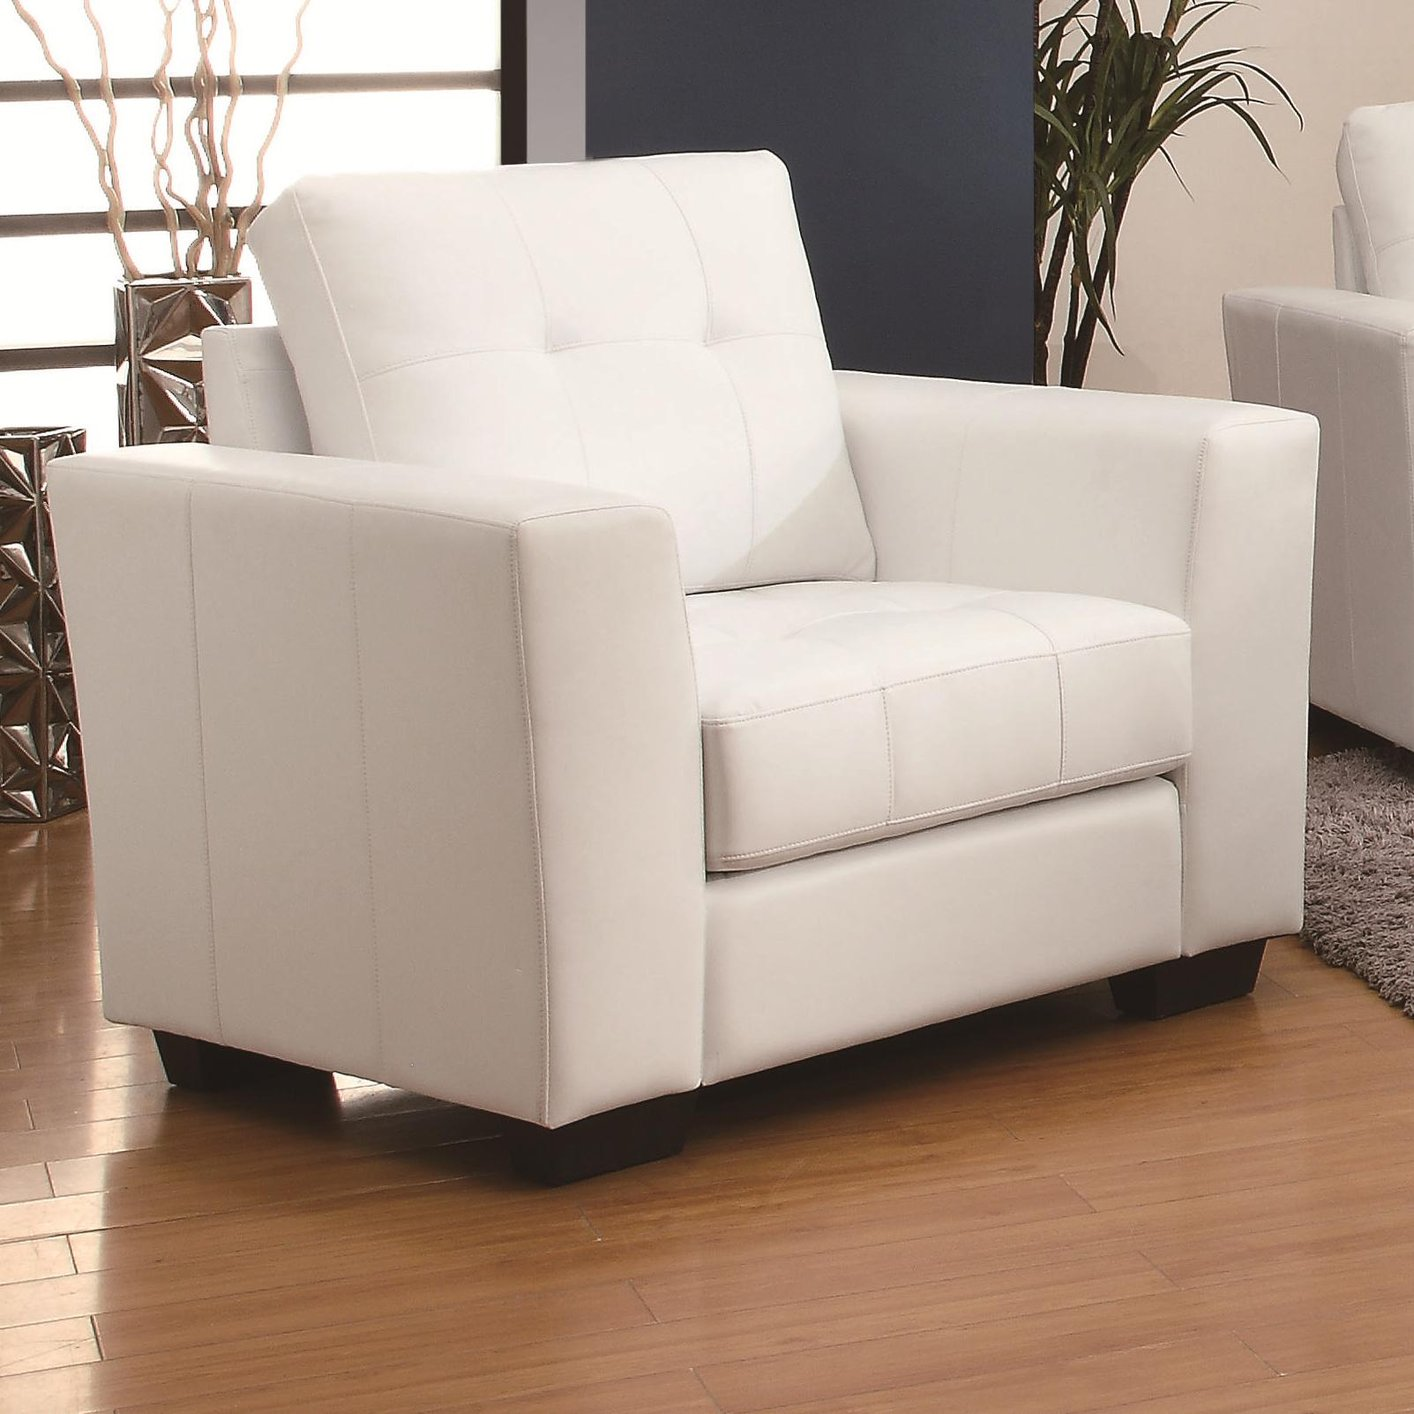 Sofa Dreams Outlet Enright White Leather Chair